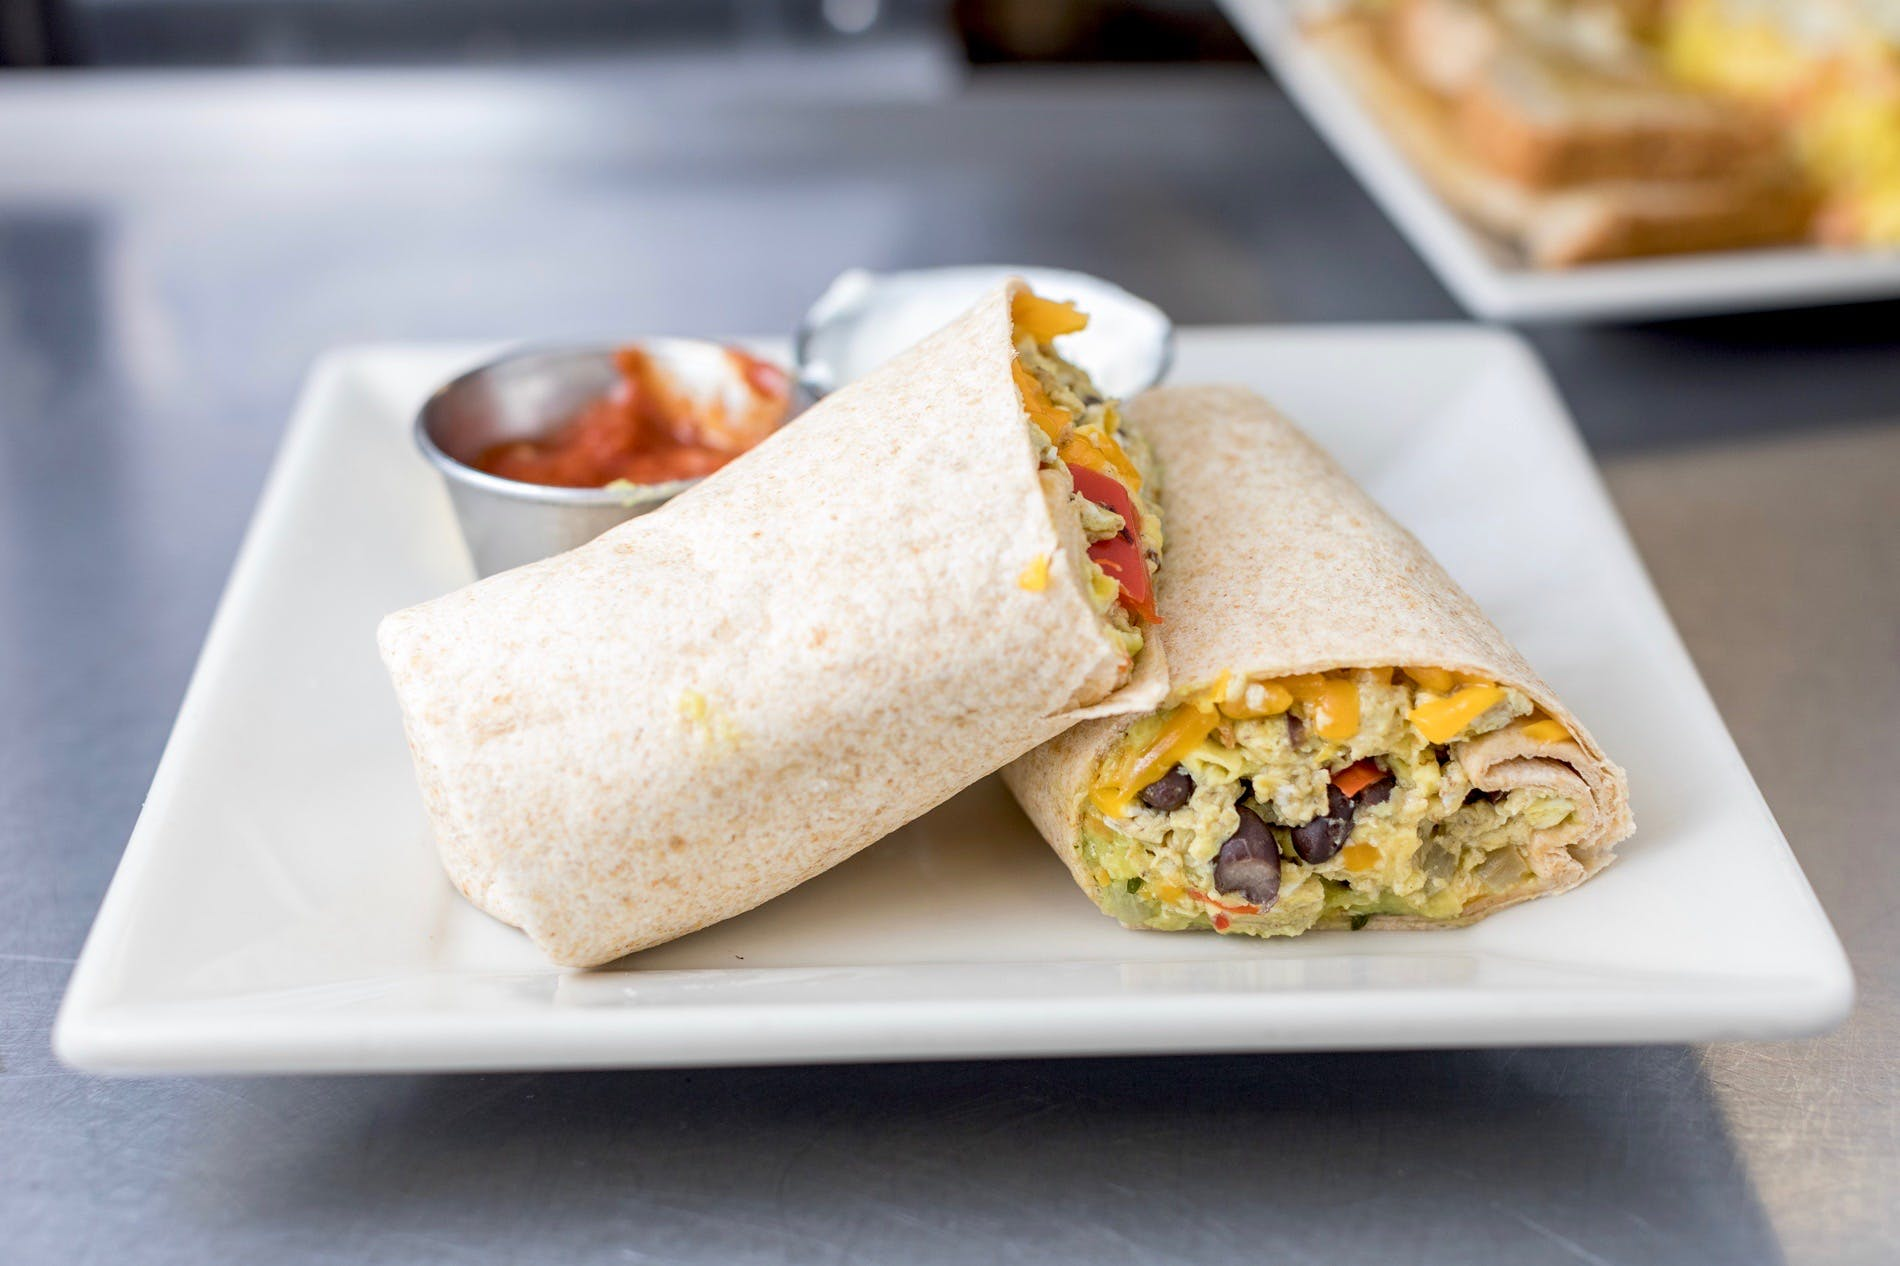 Southwest Breakfast Wrap from The French Press in Eau Claire, WI